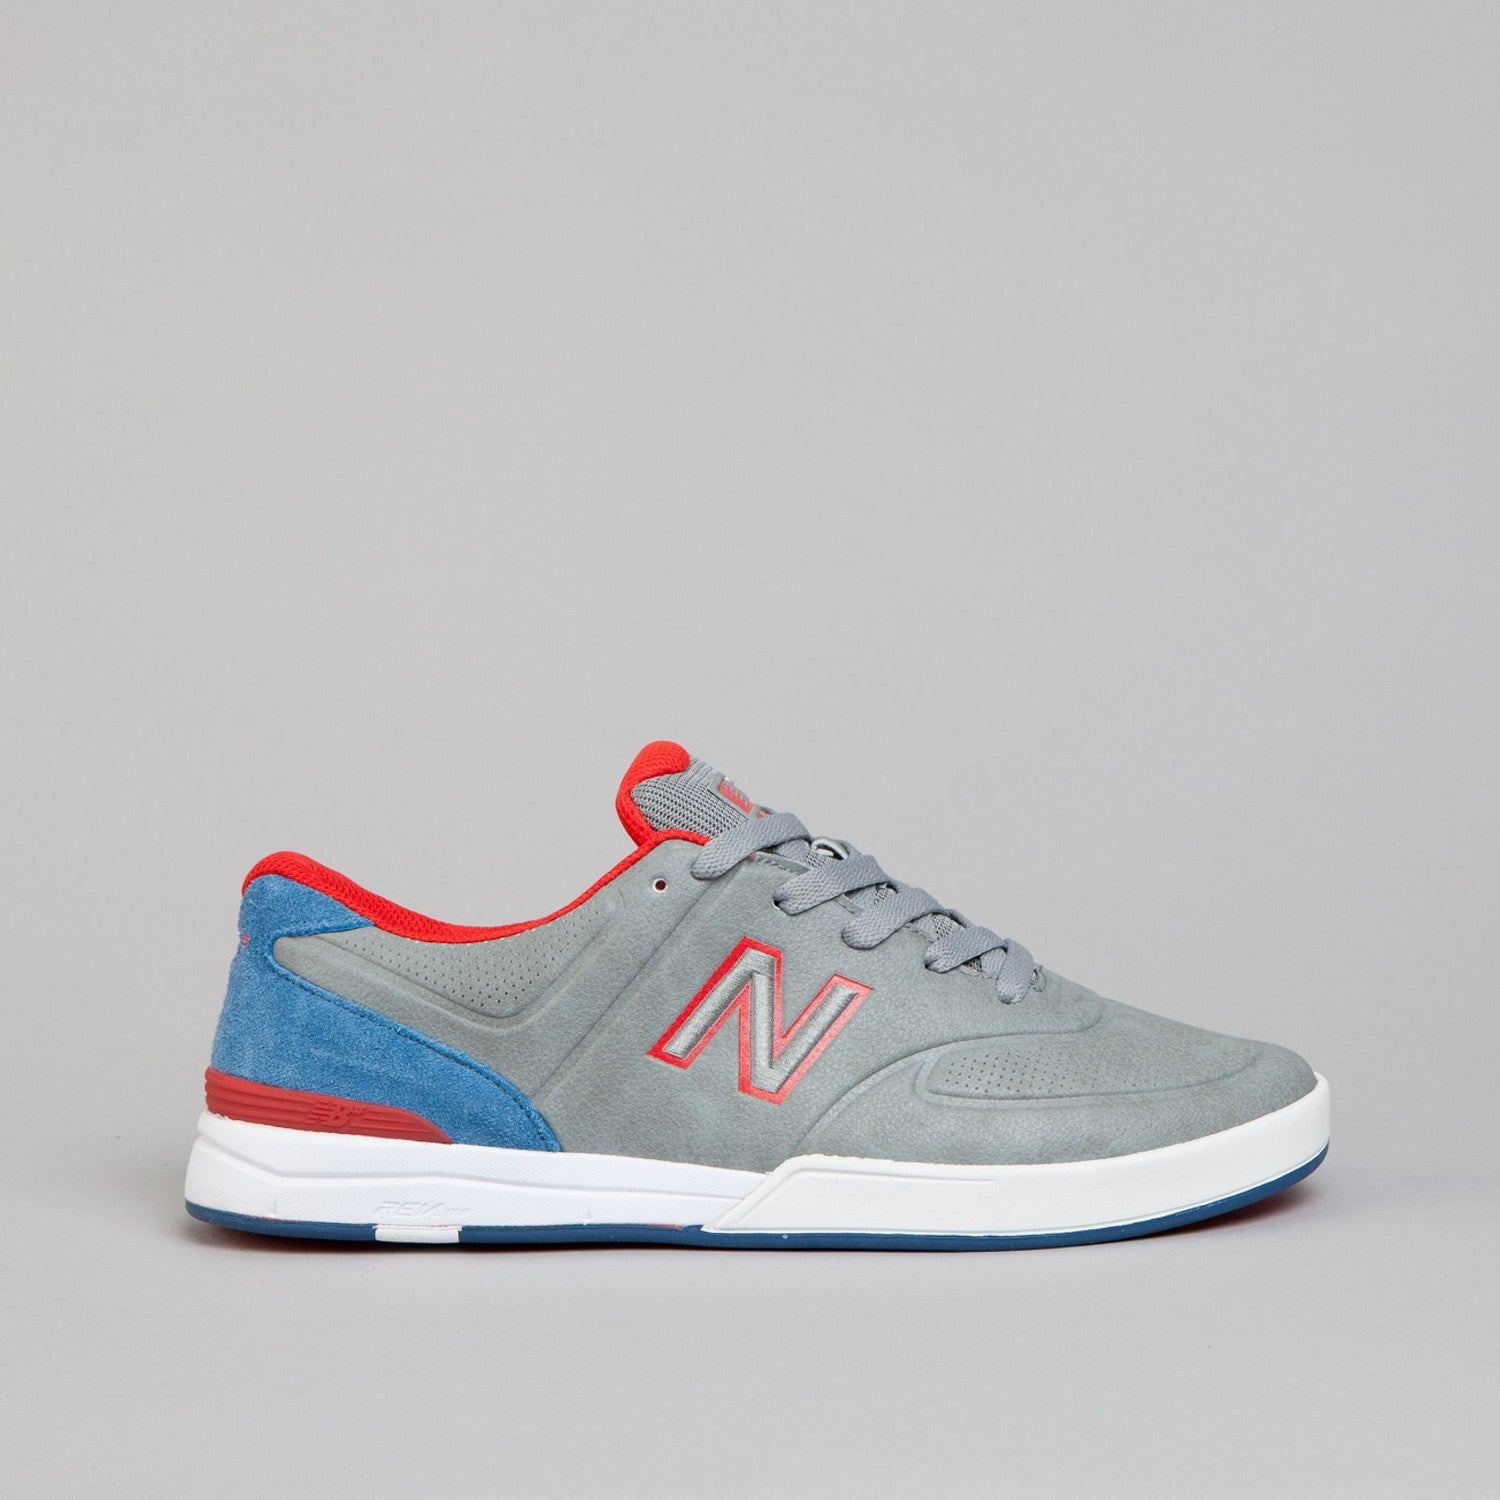 New Balance Numeric Logan 637 Shoes